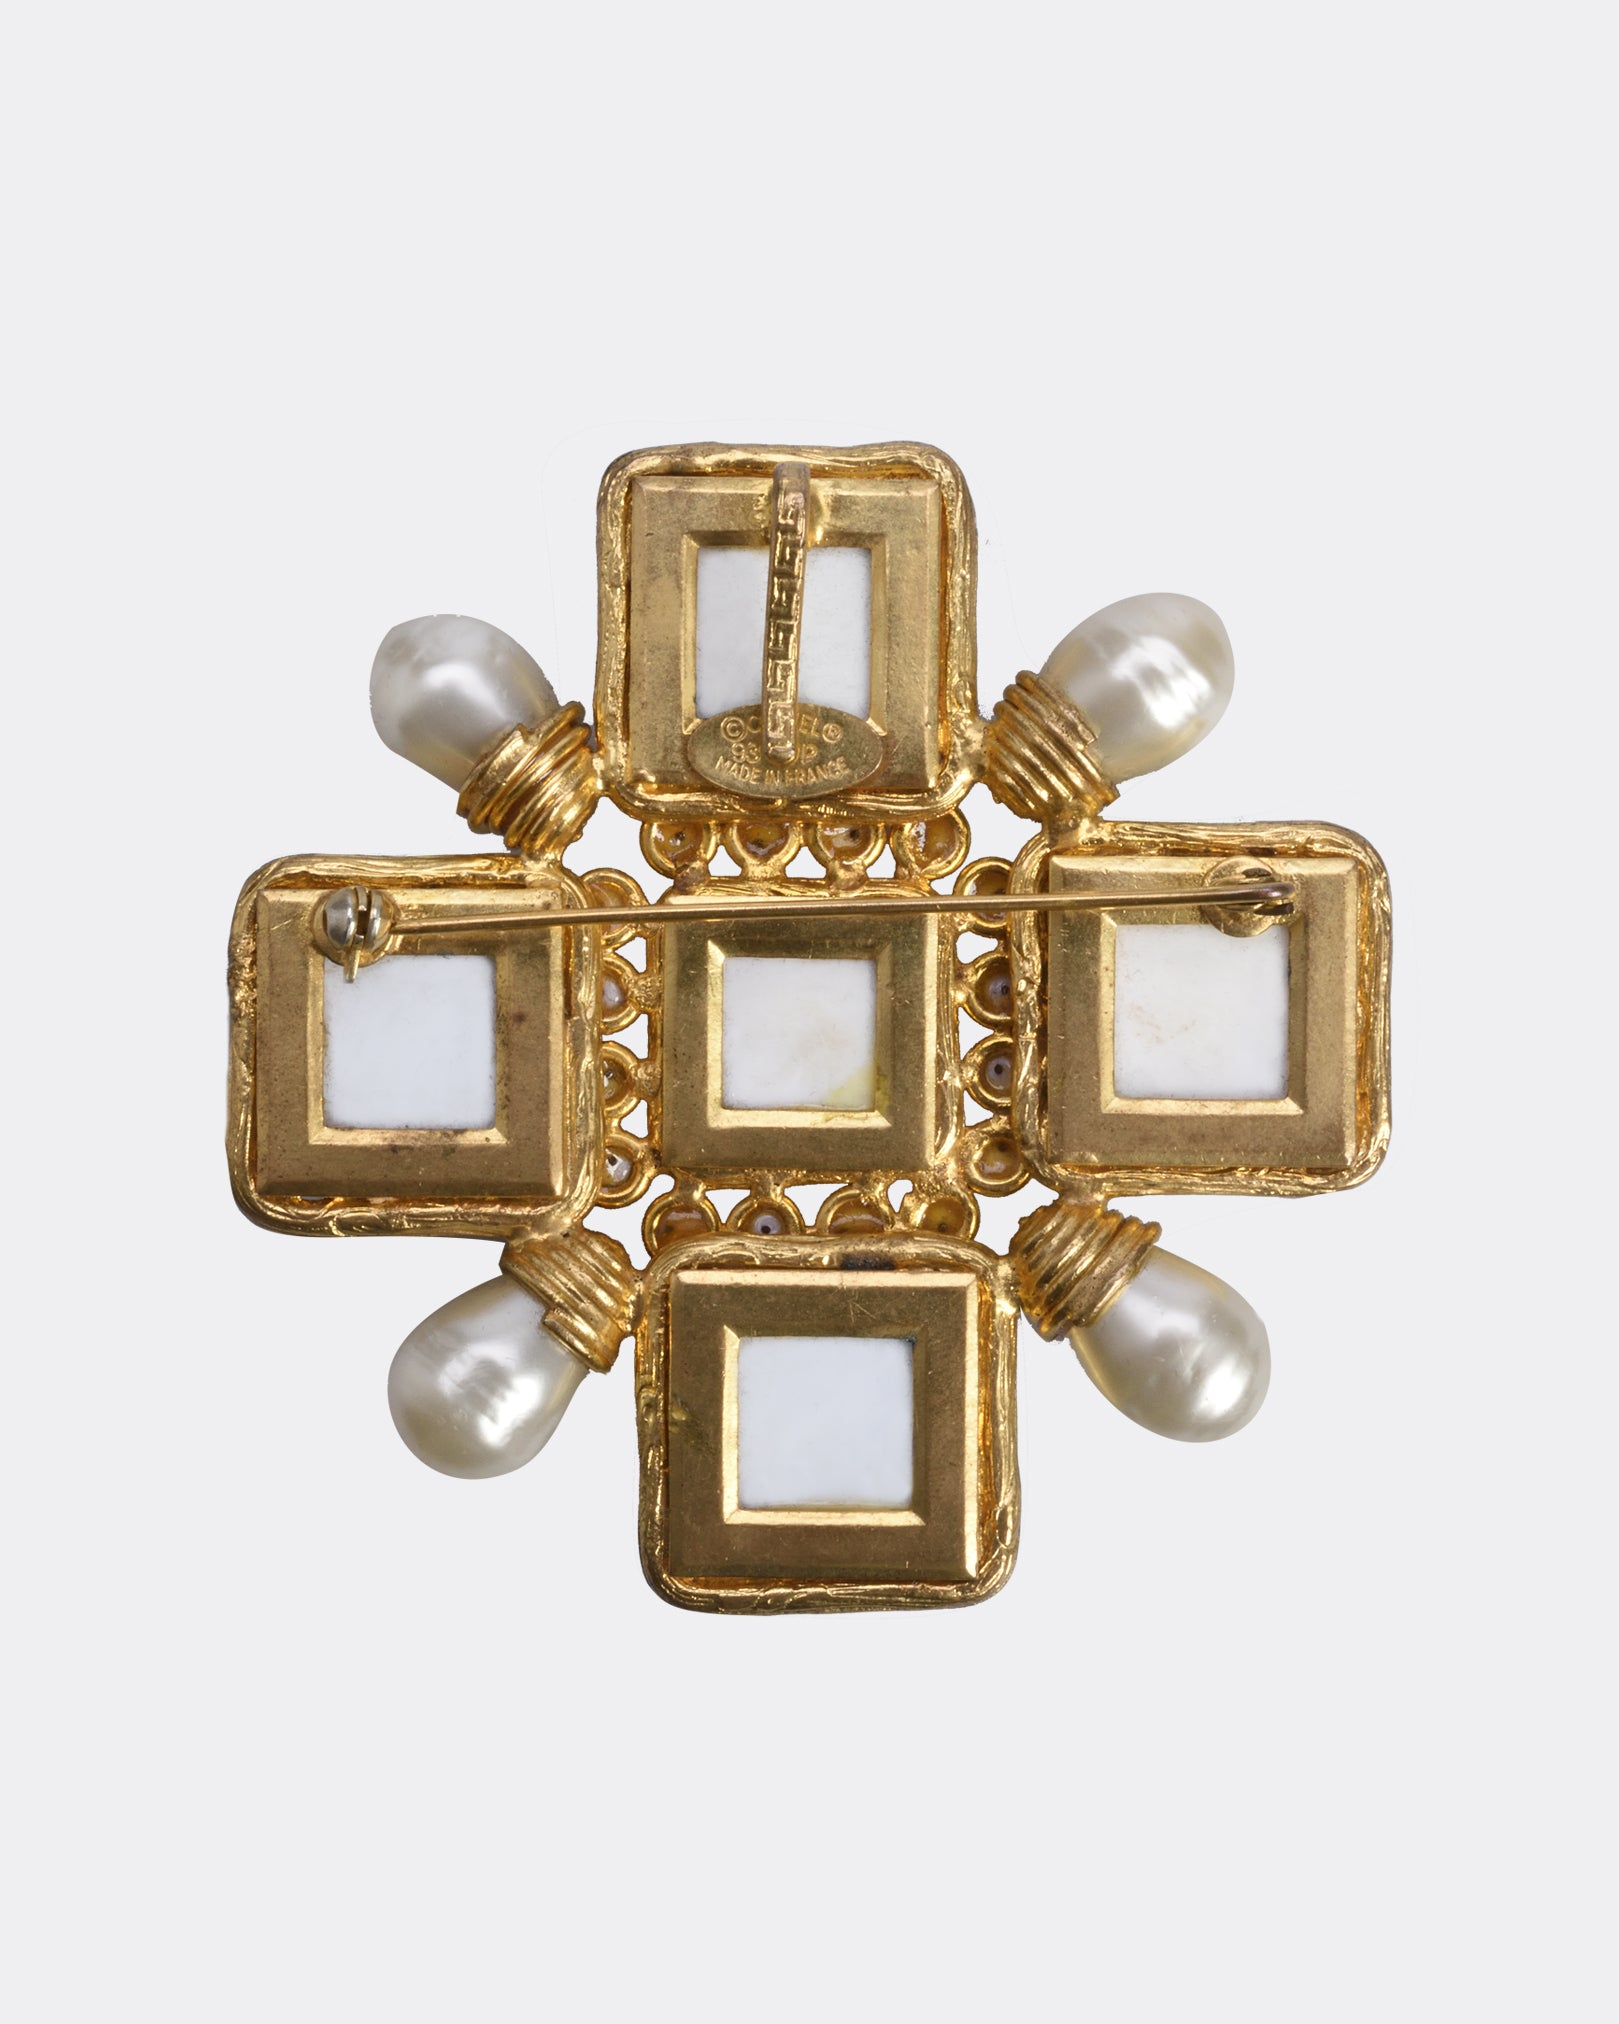 Chanel Gold Plated Metal with White Resin Brooch Pendant